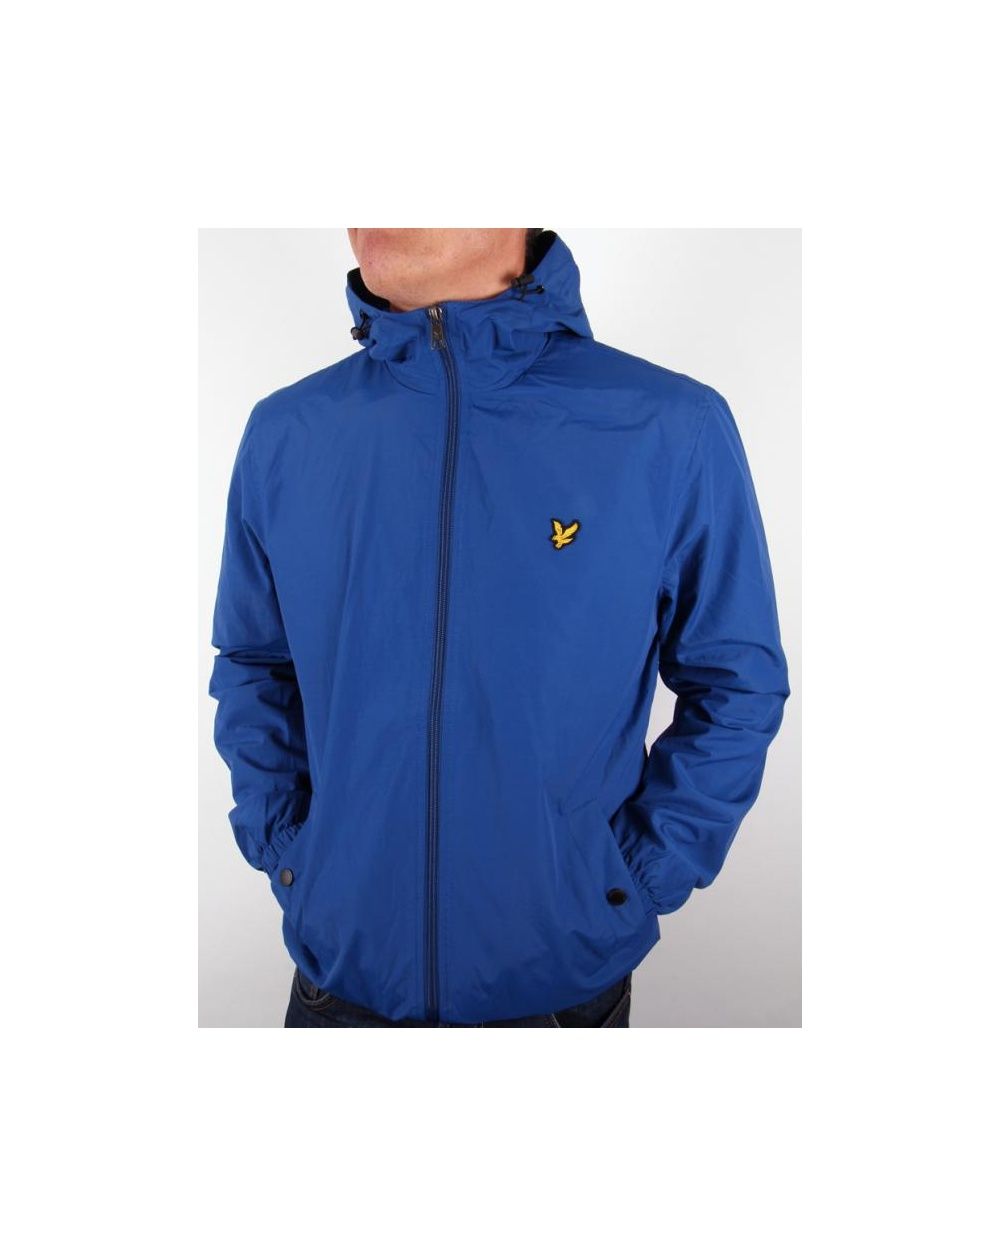 lyle and scott zip through hooded jacket saltire blue lyle scott zip through hooded jacket. Black Bedroom Furniture Sets. Home Design Ideas